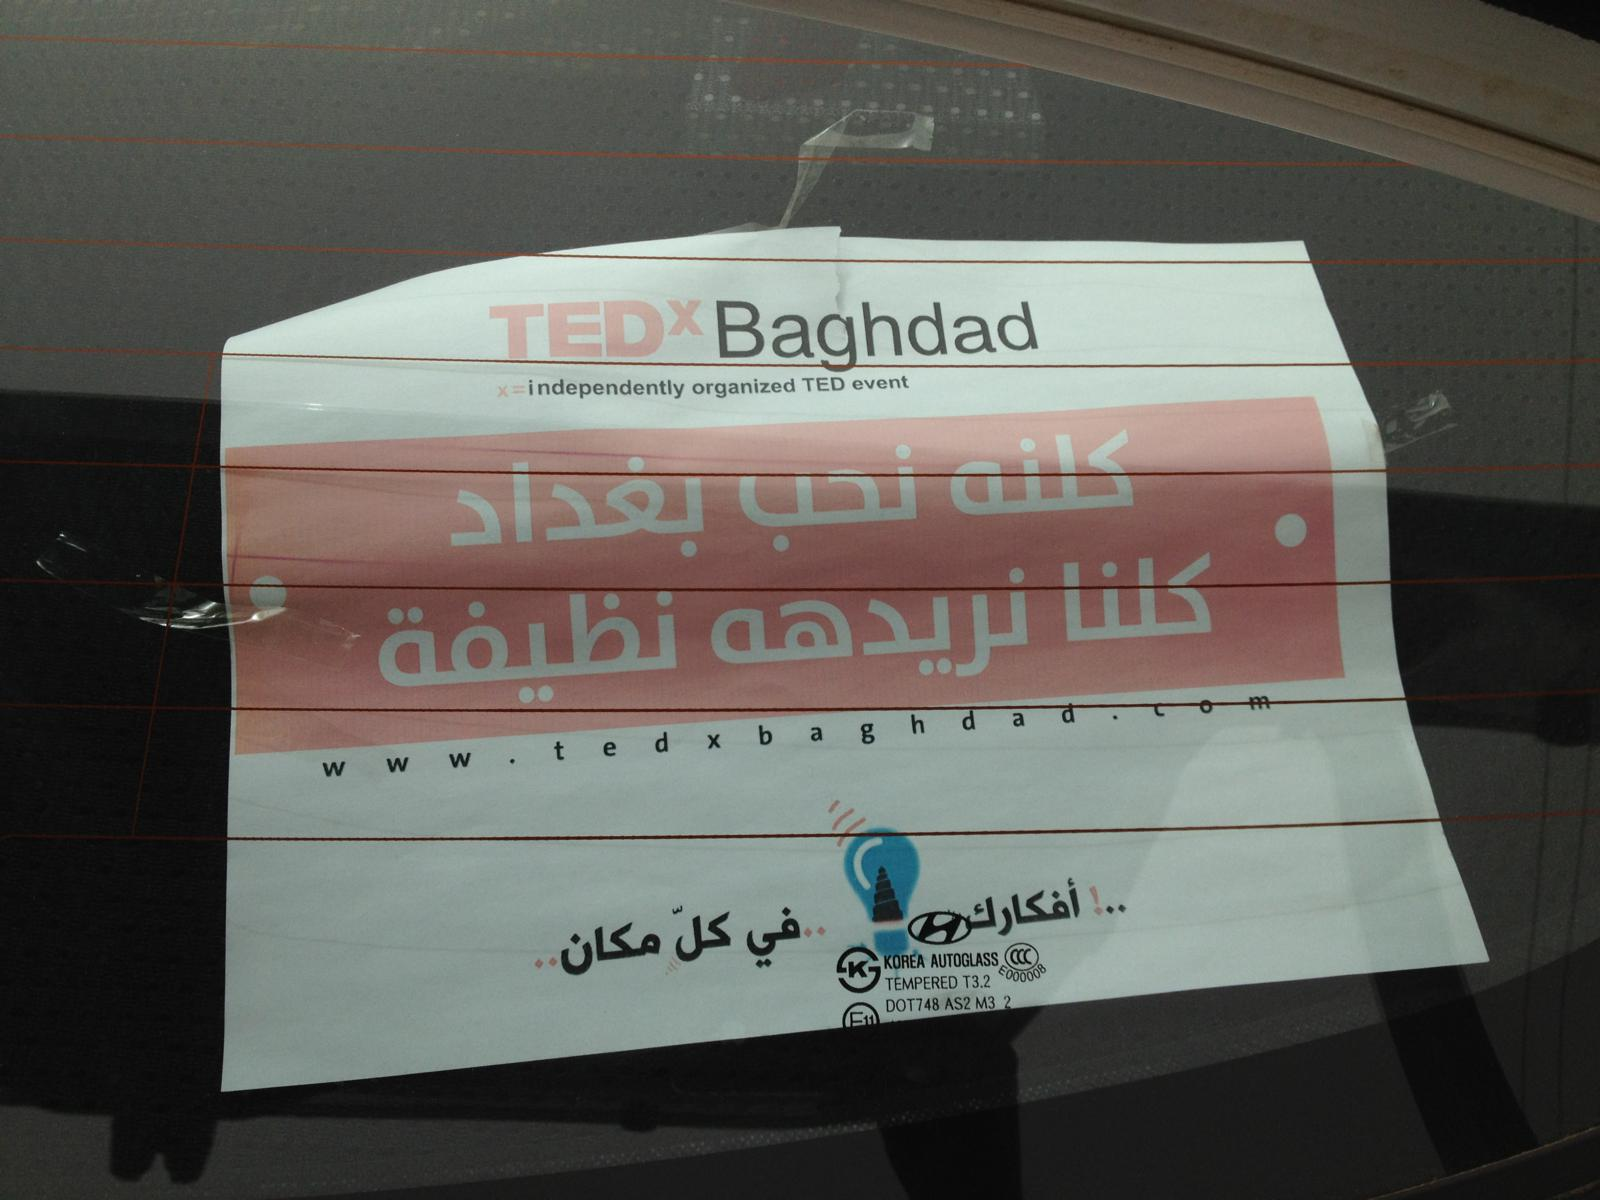 We all love Baghdad. We all want it to be clean. Part of a cleaning initiative by TEDxBaghdad.